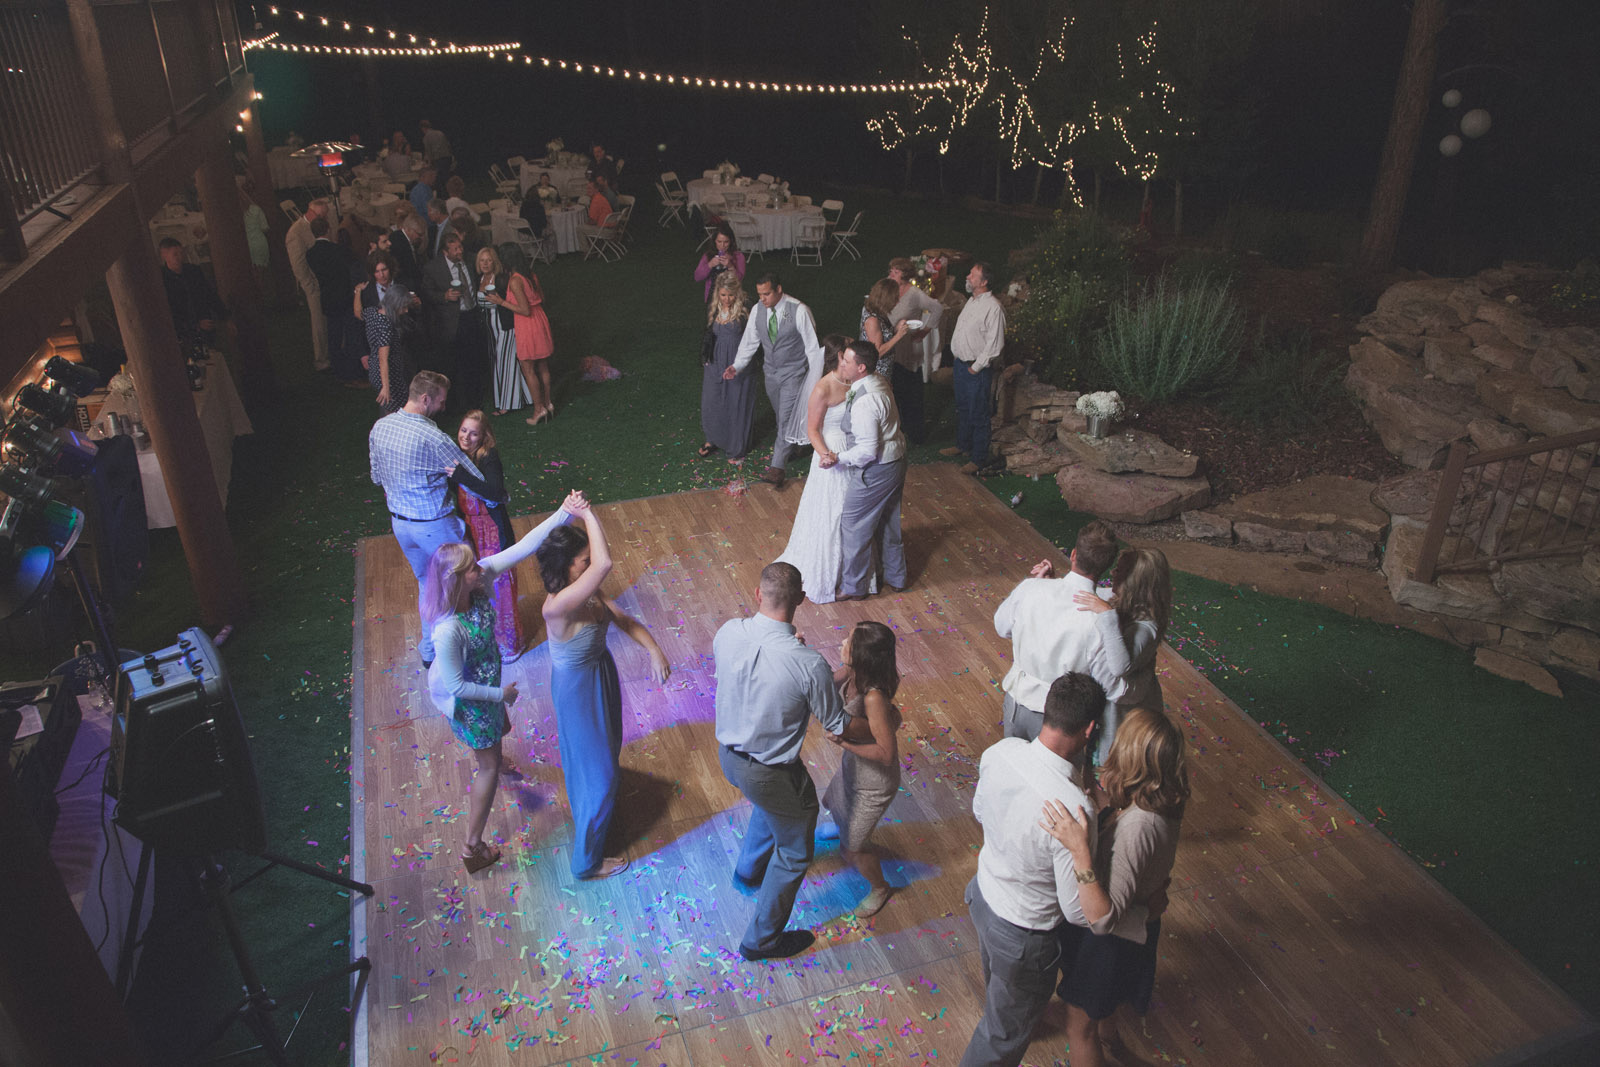 235-reception-ideas-reception-farmington-nm-co-new-mexico-colorado-mancos-ideas-string-lights-cabin-outside-natural-wedding-night-strobe-flash-dance-party